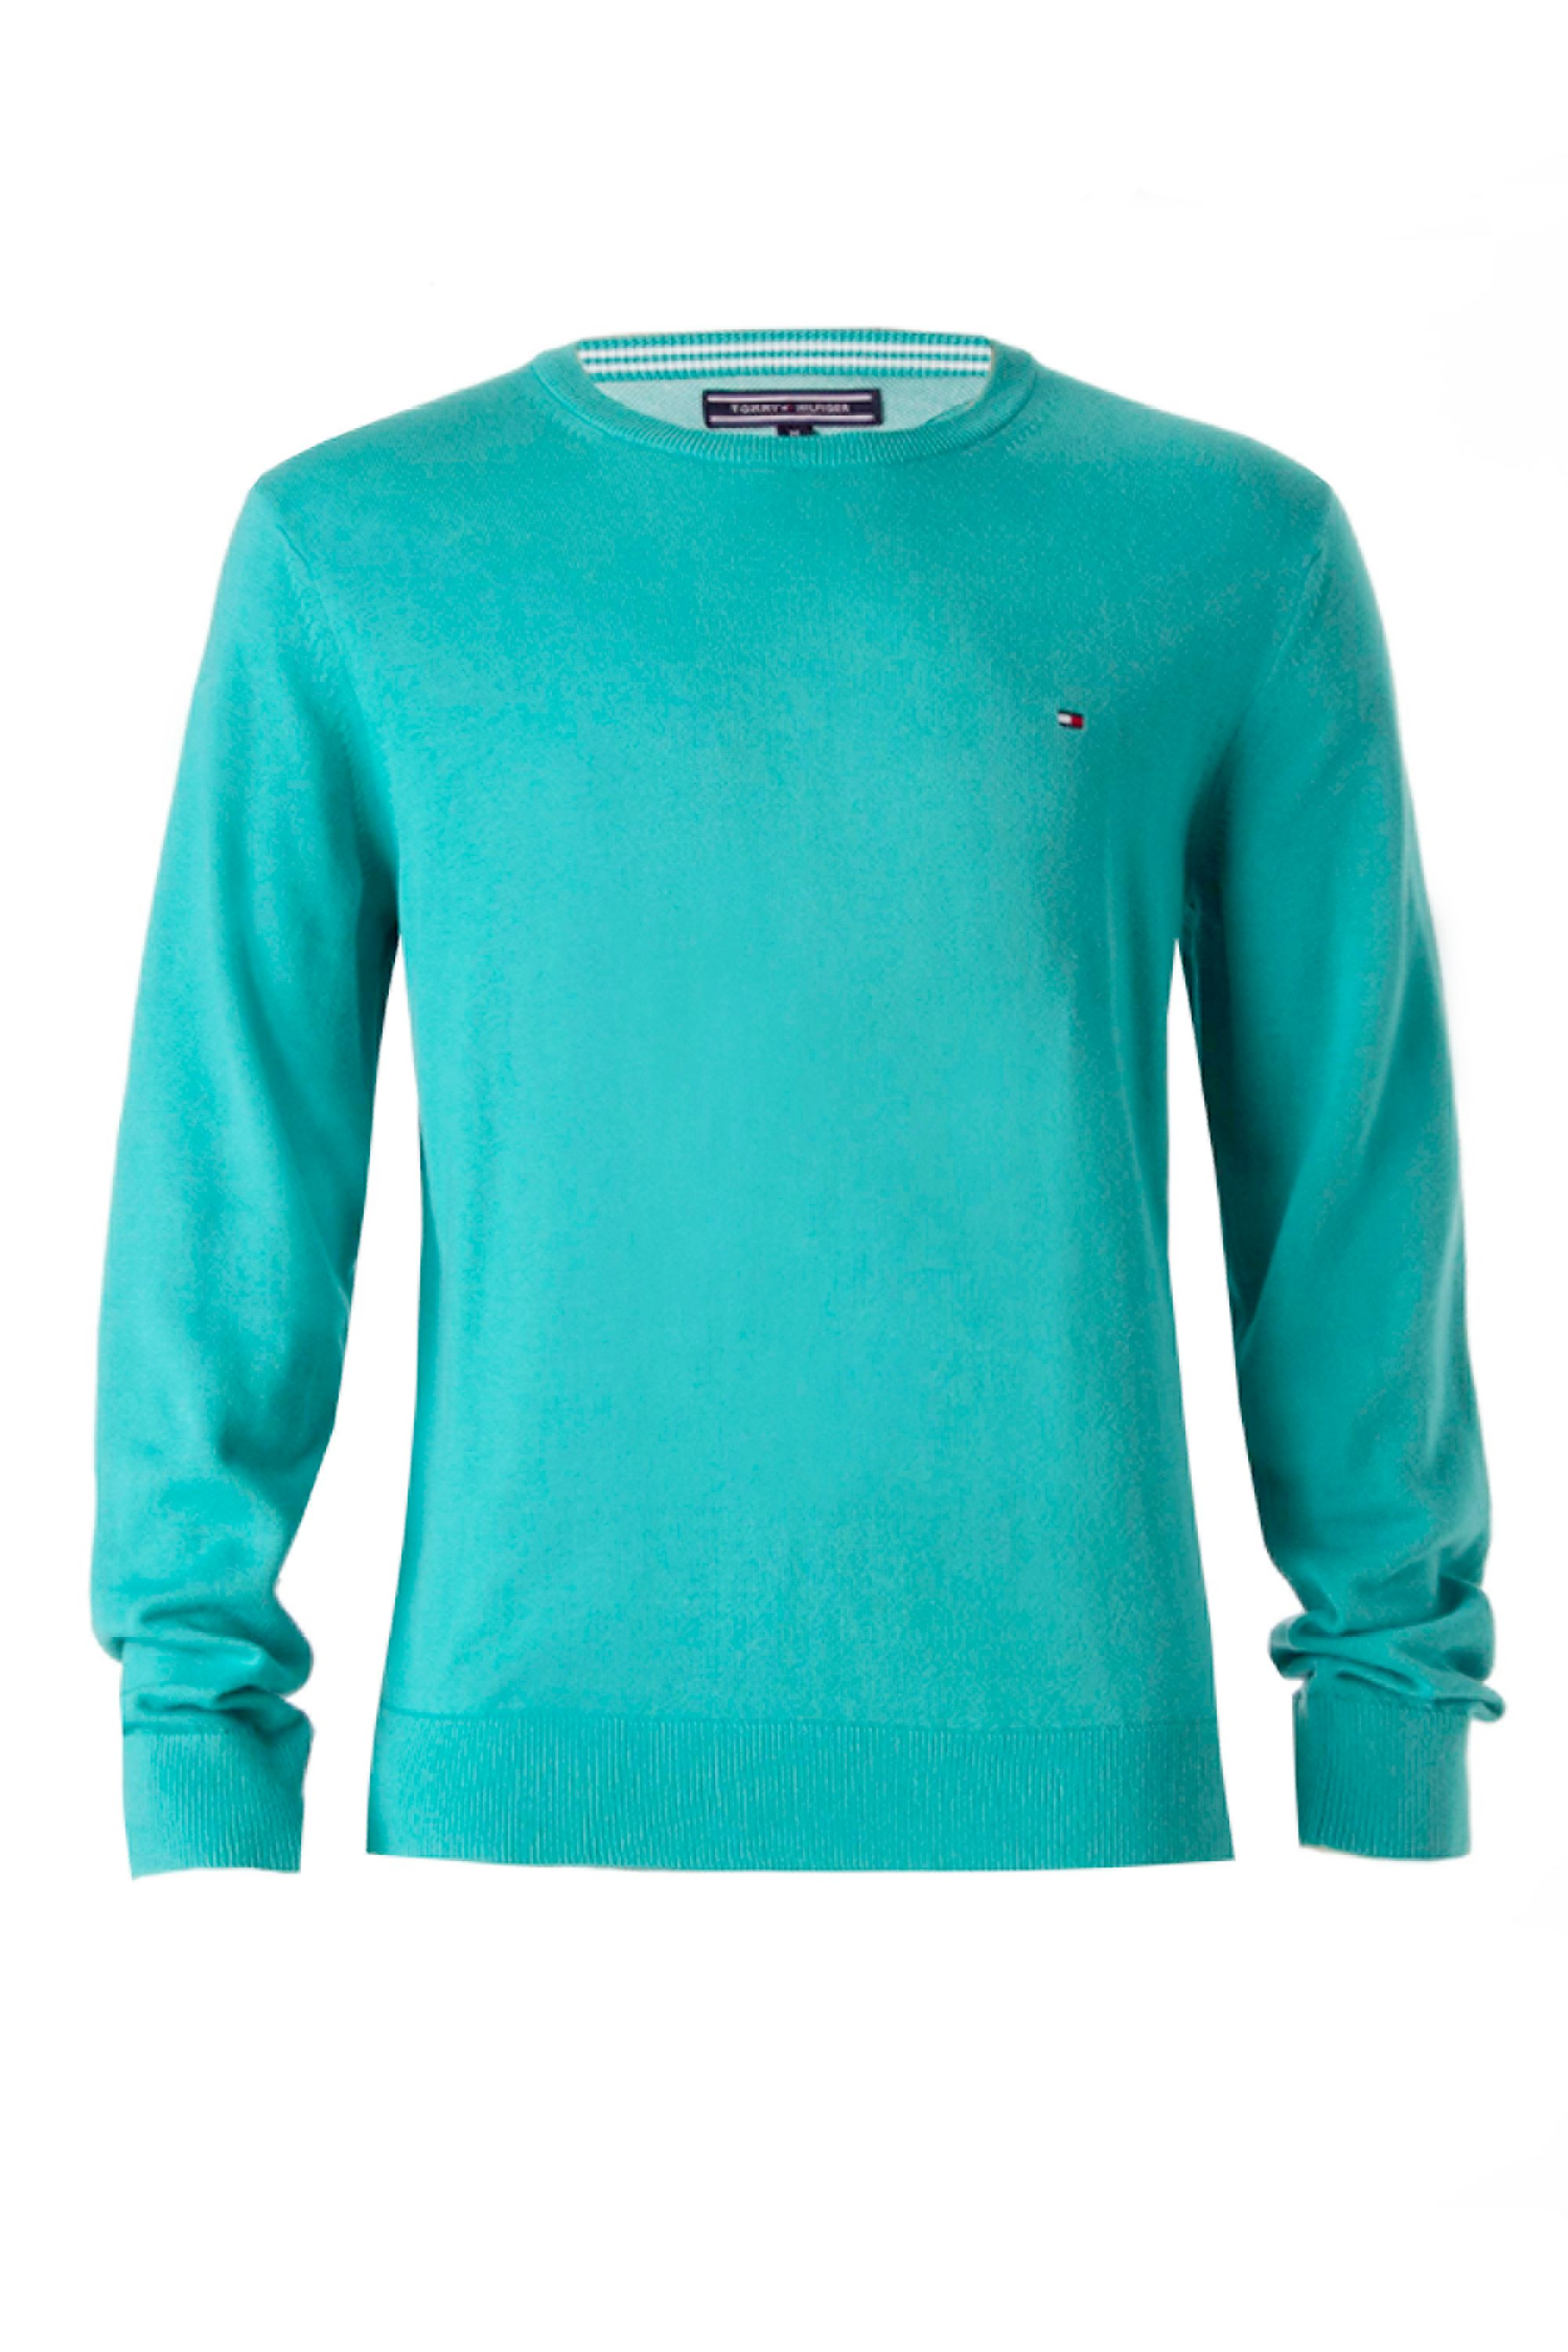 Pacific crew neck jumper